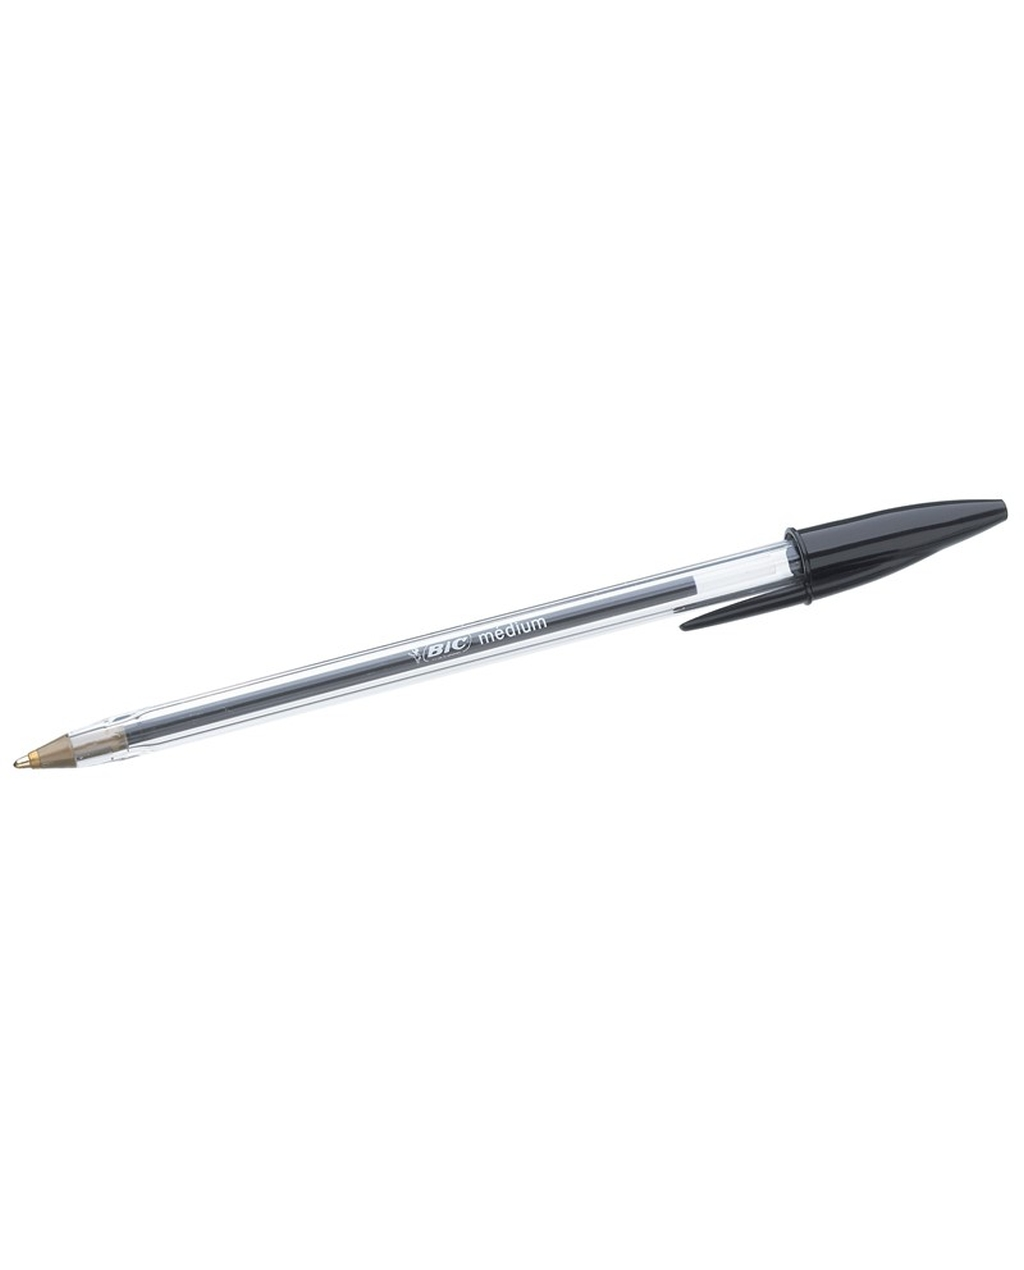 BIC Cristal Original Medium Ballpoint Pen -  Black